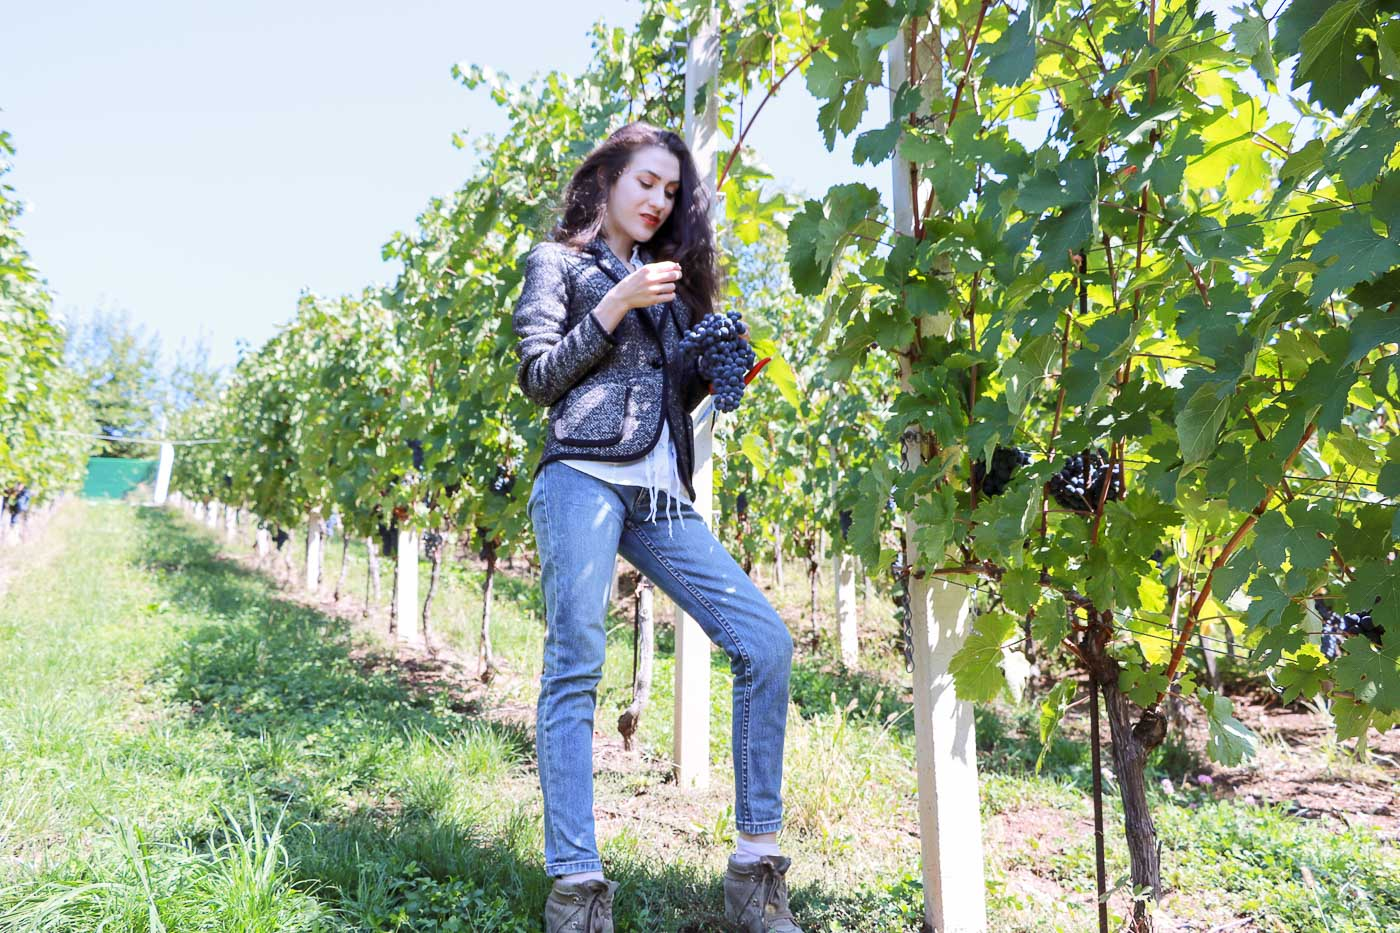 Fashion Blogger Veronika Lipar of Brunette from Wall Street on how to dress for the grape harvest this autumn